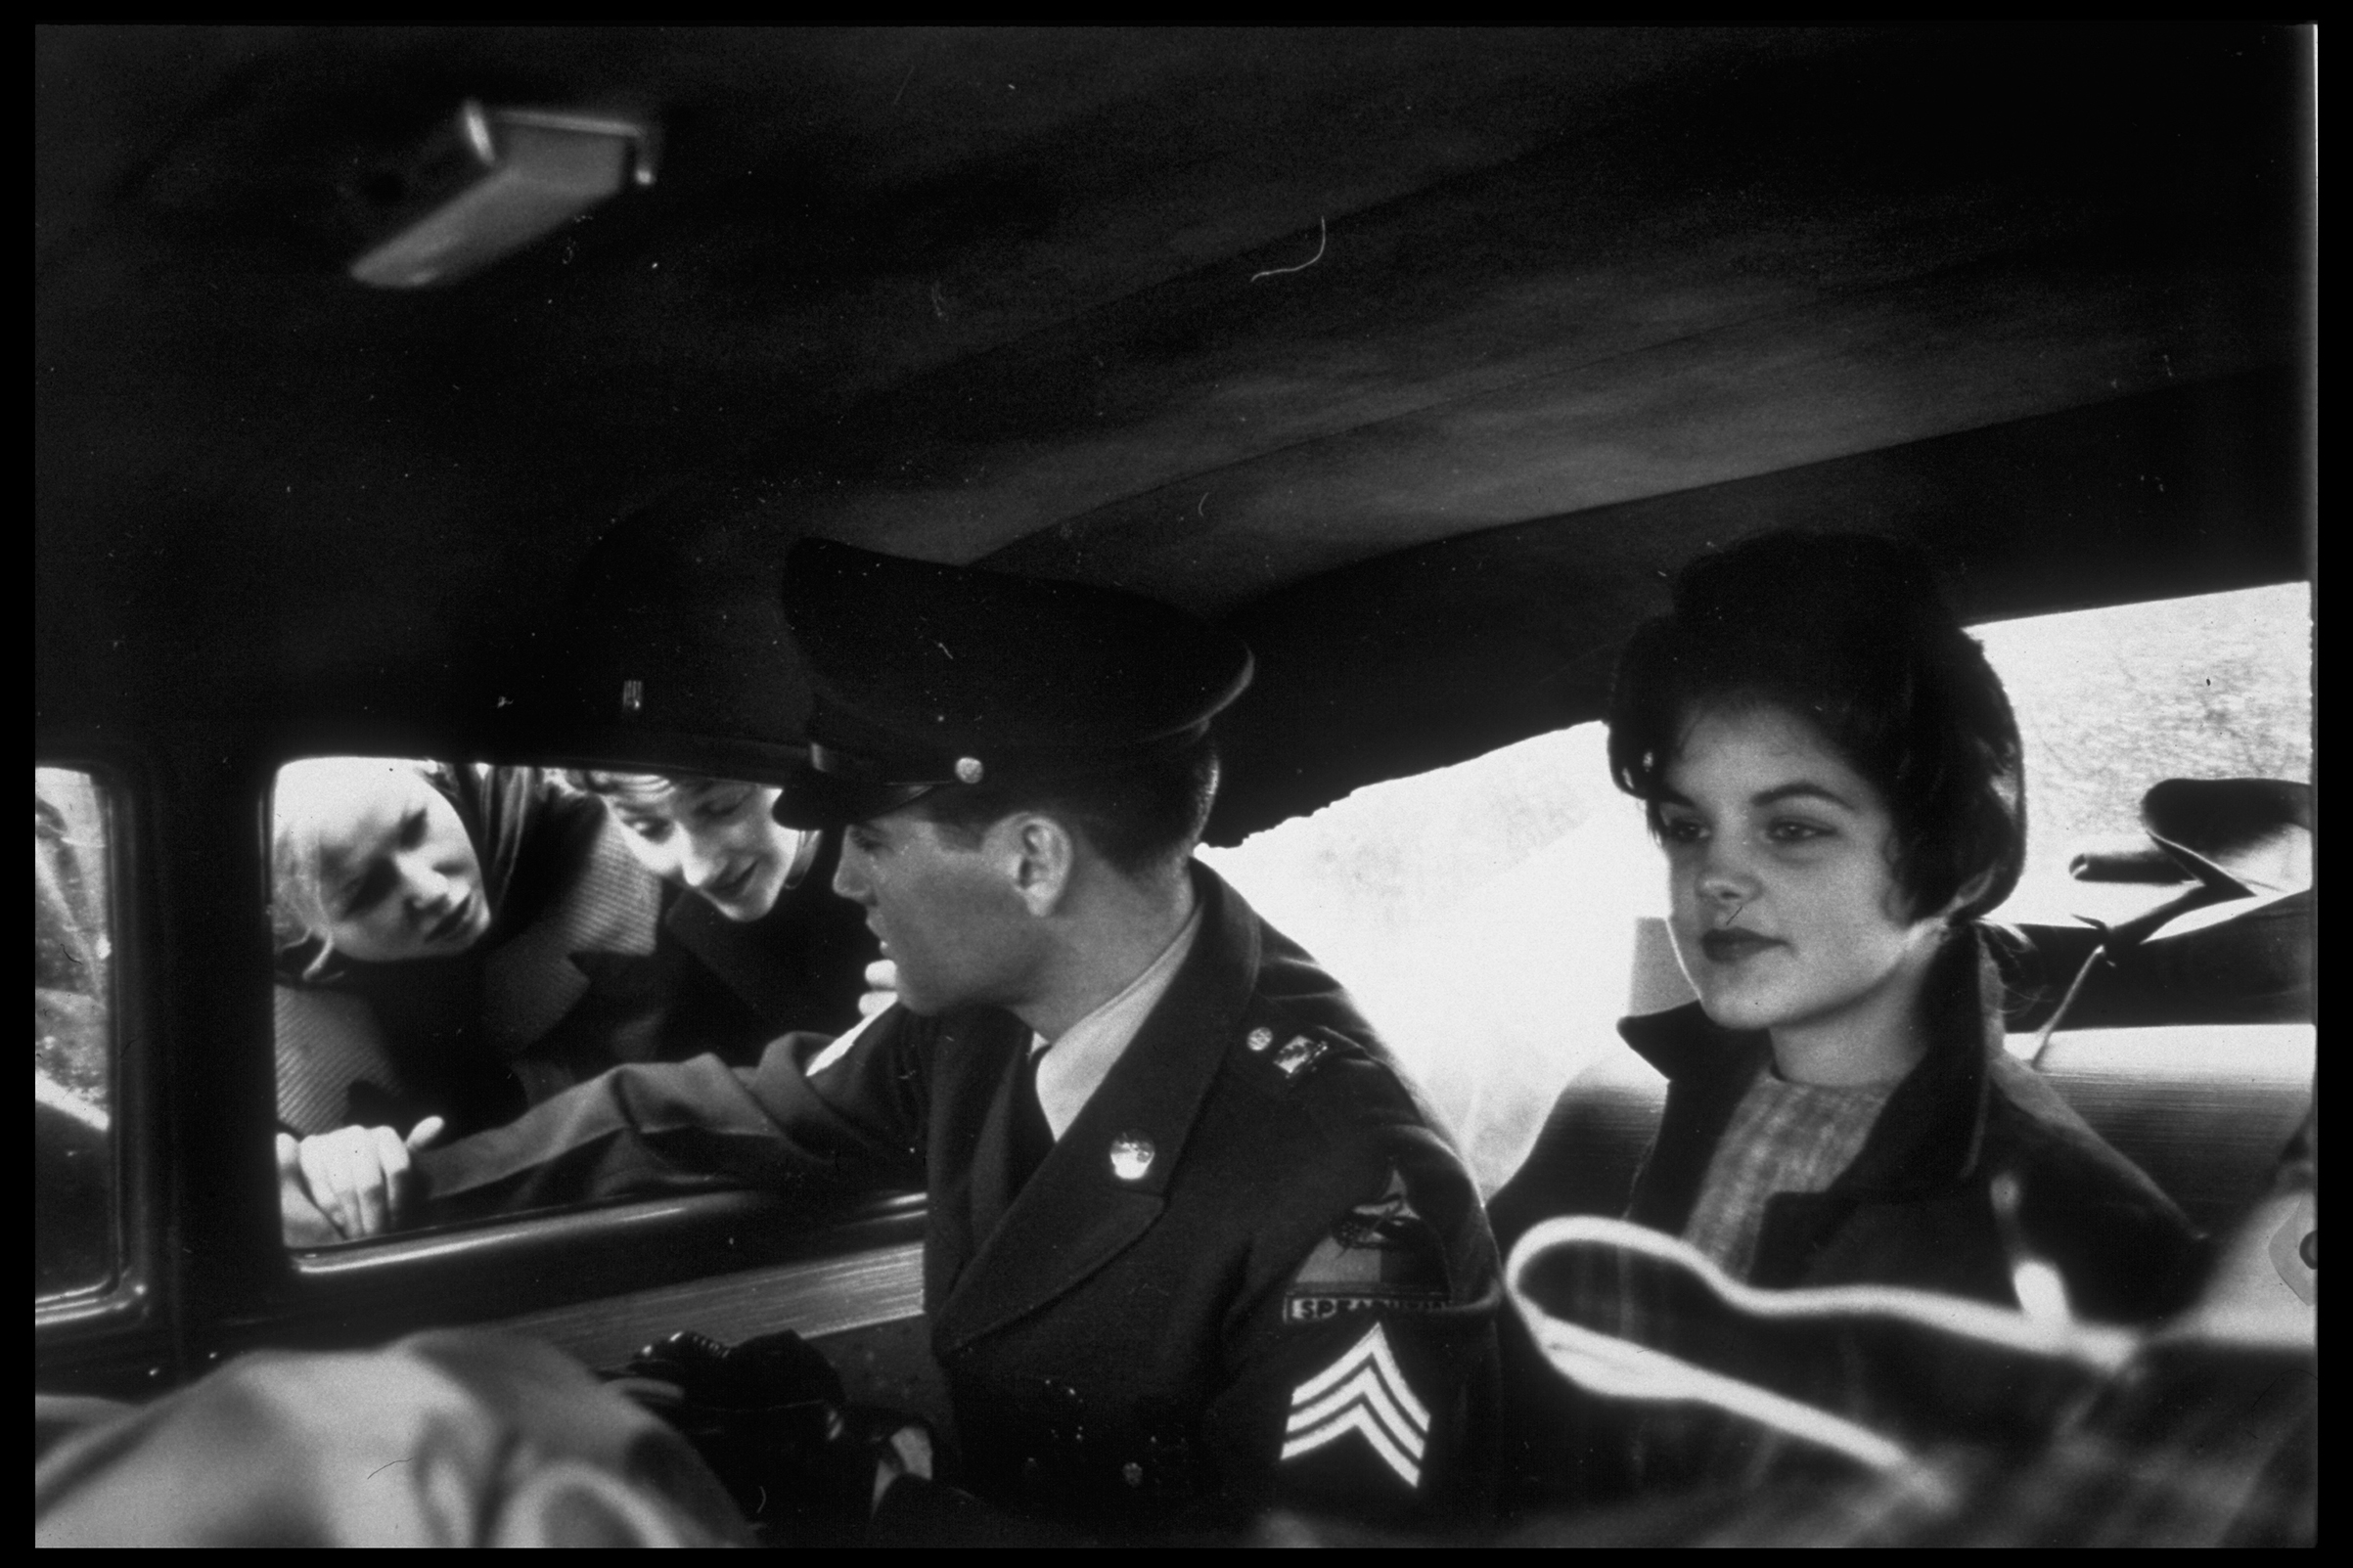 Rocker/Corporal Elvis wearing uniform while chatting w. fans through window as girlfriend Priscilla Beaulieu sits beside him in back seat of car, Germany, 1960.